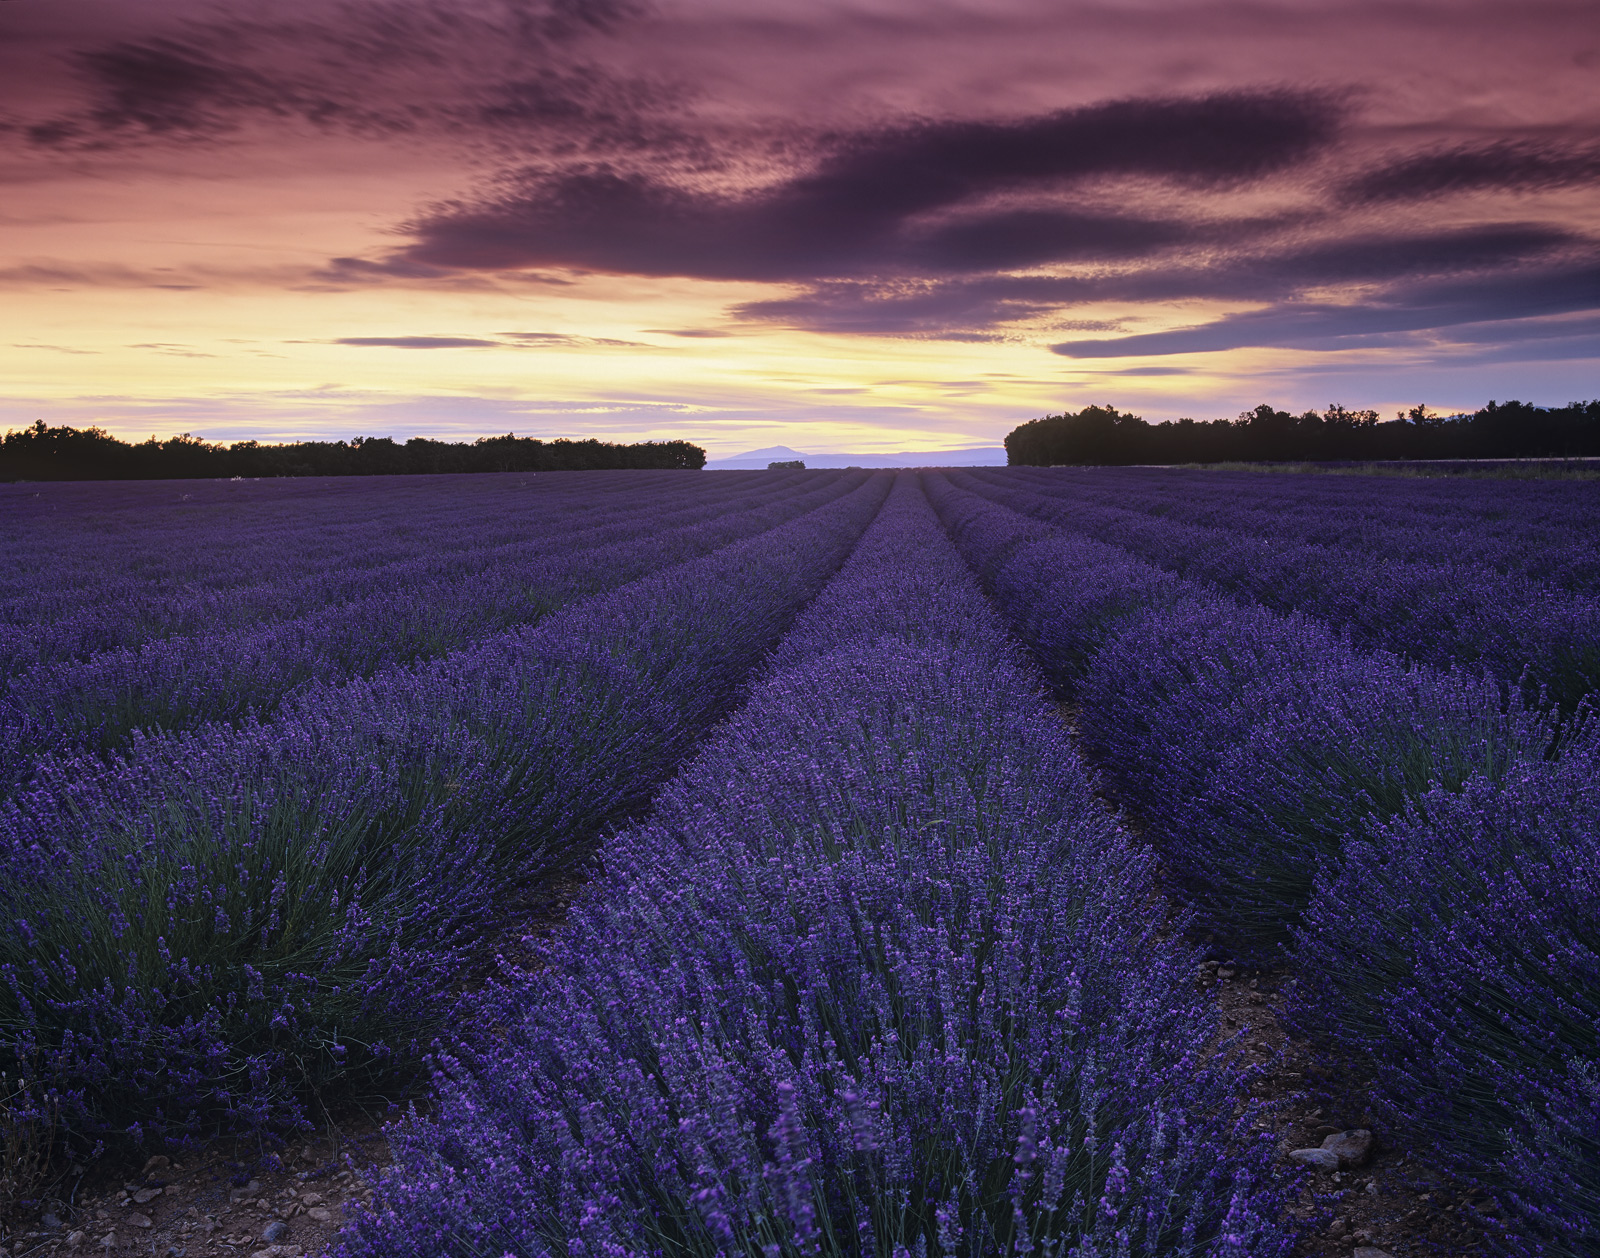 The lavender fields of Provence are justifably famous for their photogenic appearance with endless rows stretching into the distance...